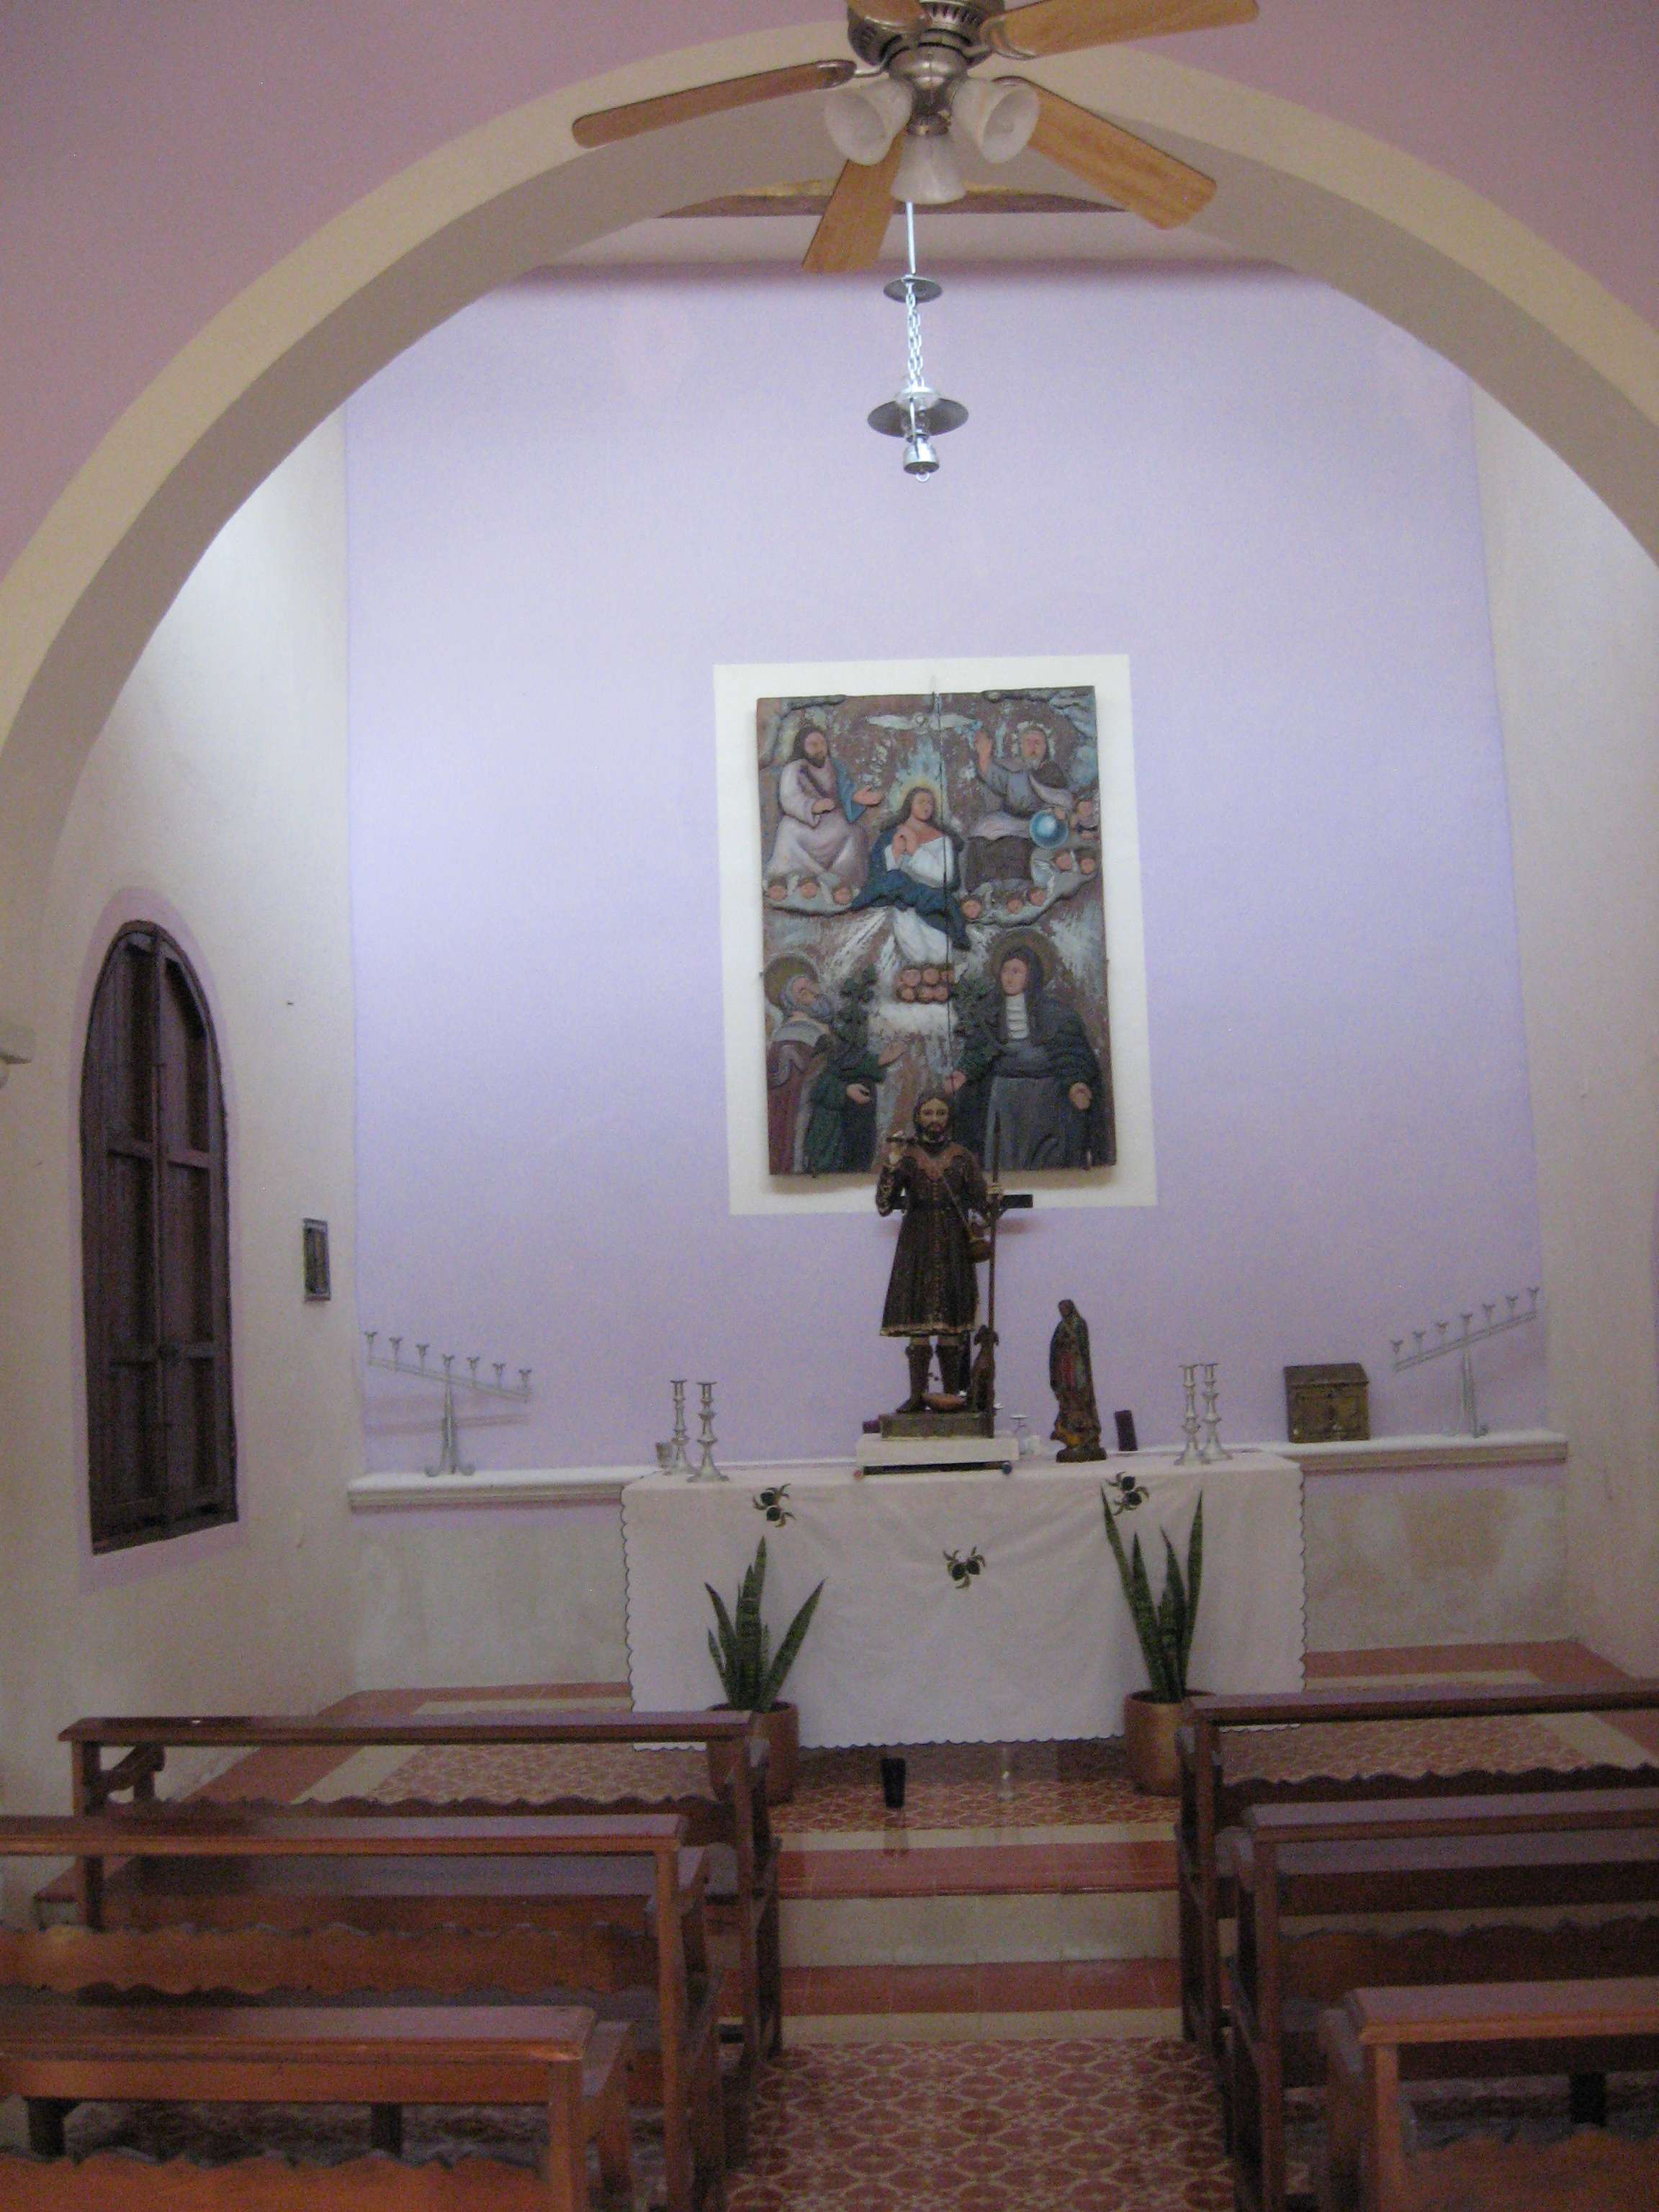 Inside the Chapel at the Hacienda